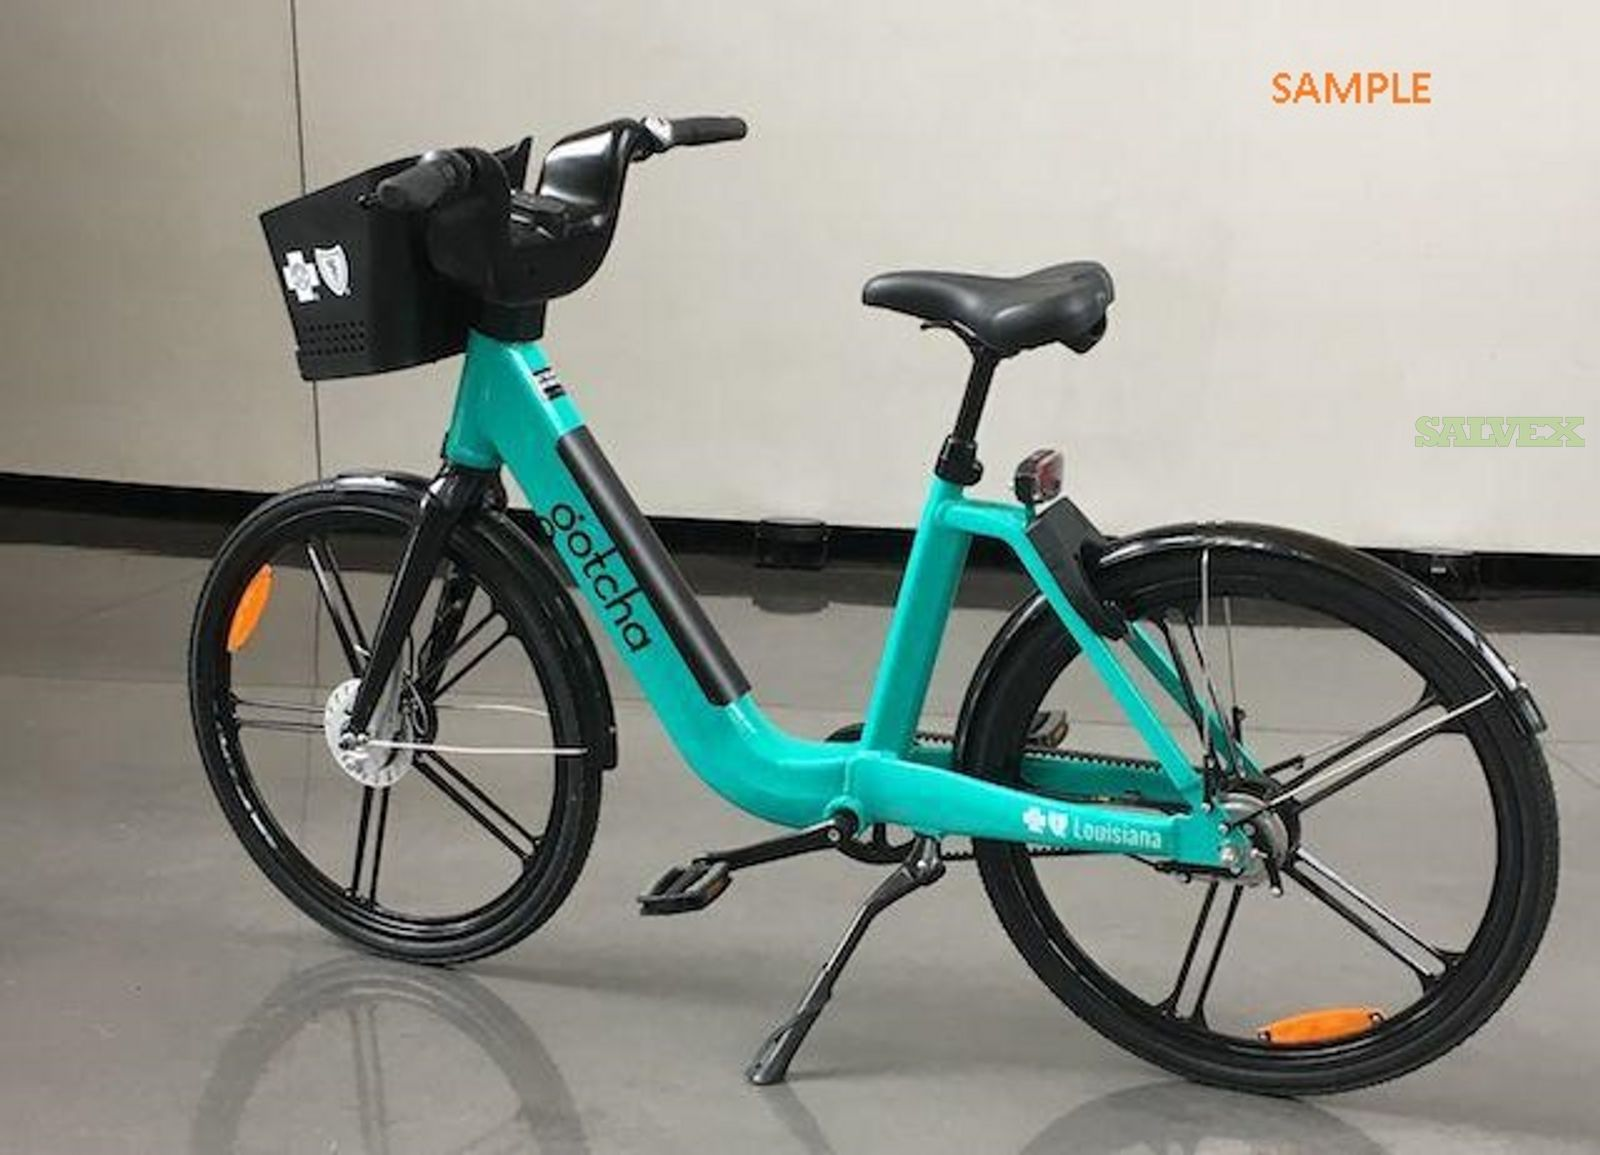 Electric Bicycles - No Batteries (144 Units) - In Alabama